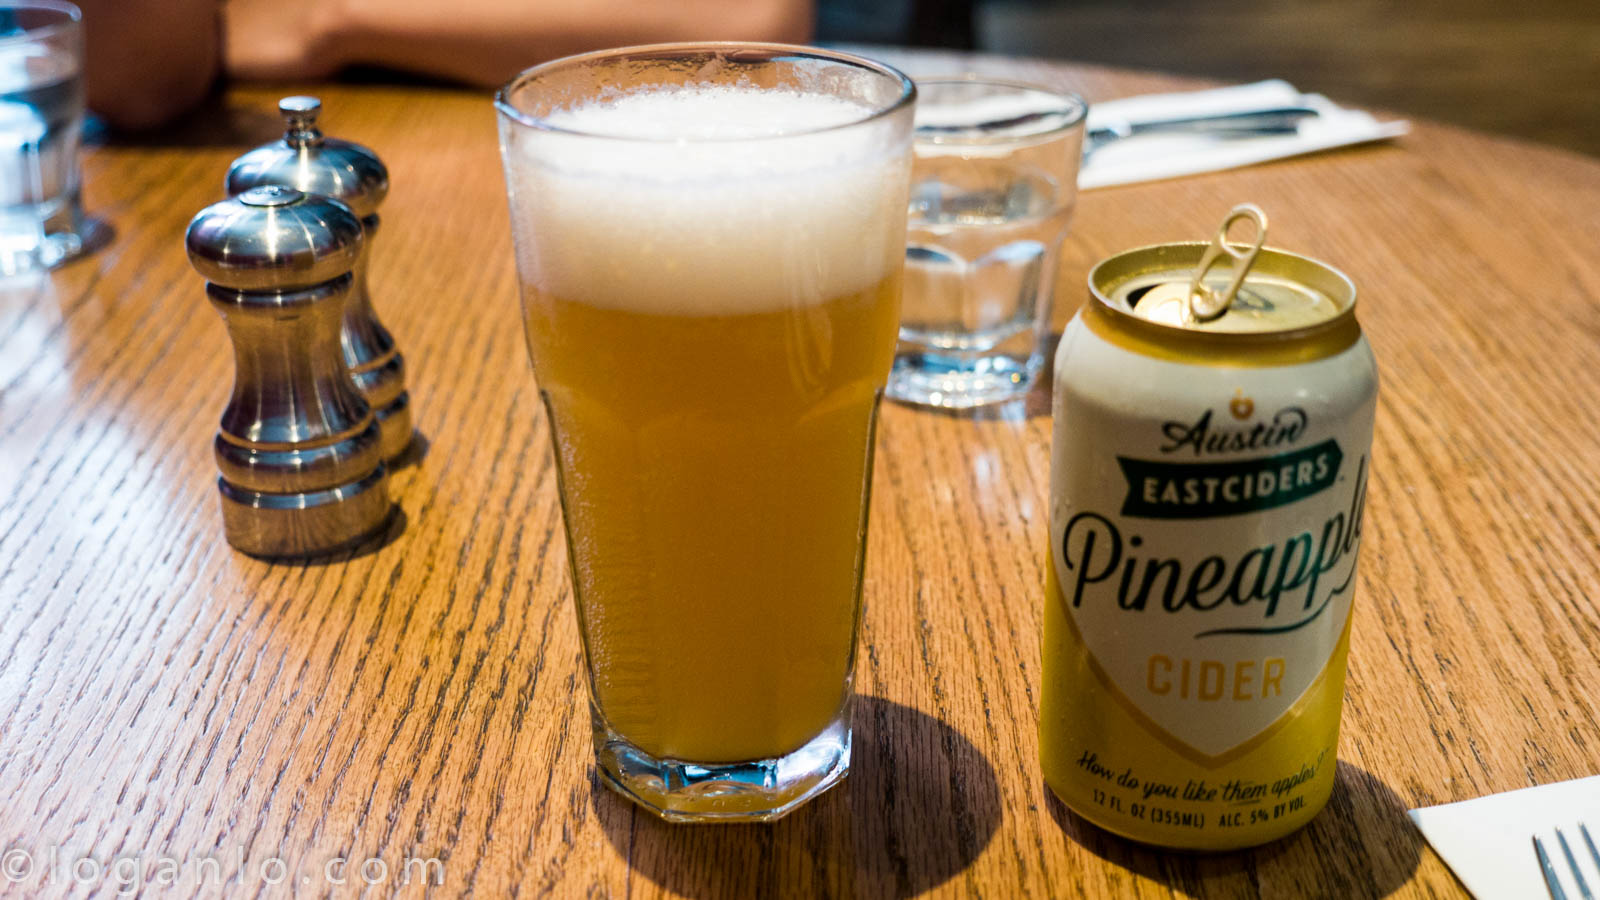 Pineapple cider